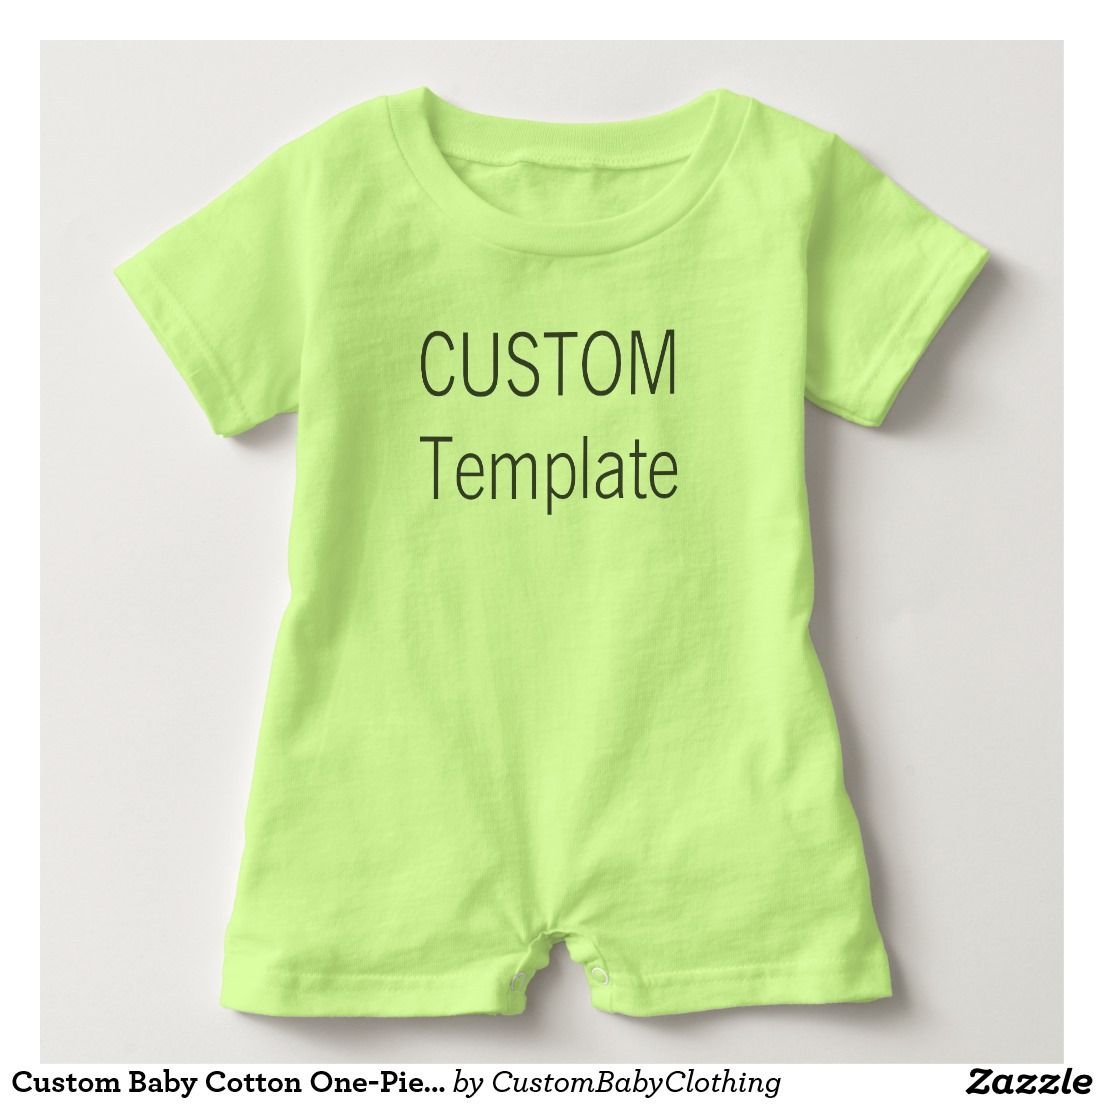 Awesome 1 Week Schedule Template Big 18th Invitation Templates Round 2 Fold Brochure Template 2 Page Resume Design Youthful 2 Page Resume Format For Experienced Yellow2 Page Resume Sample Mr Onederful Wonderful Kids Birthday T Shirt | Eli First Birthday ..